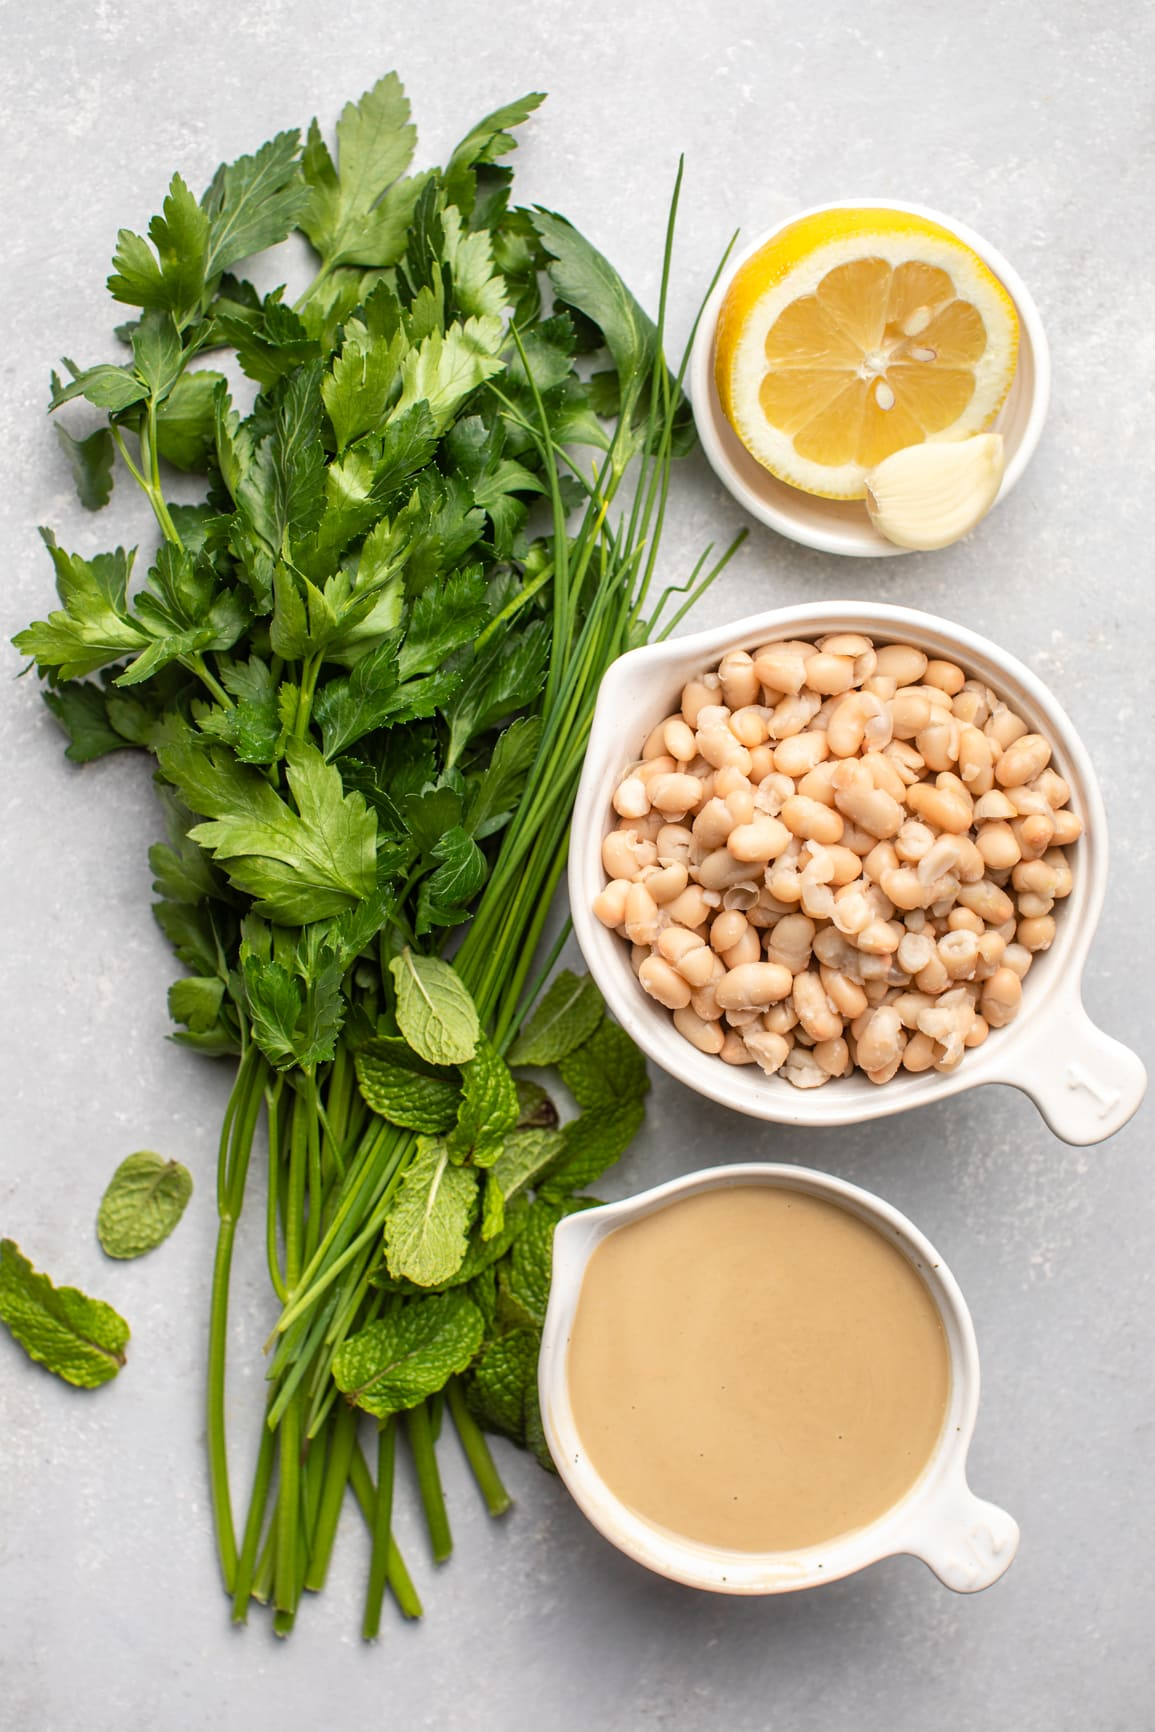 ingredients for creamy white bean dip in small white bowls on grey background